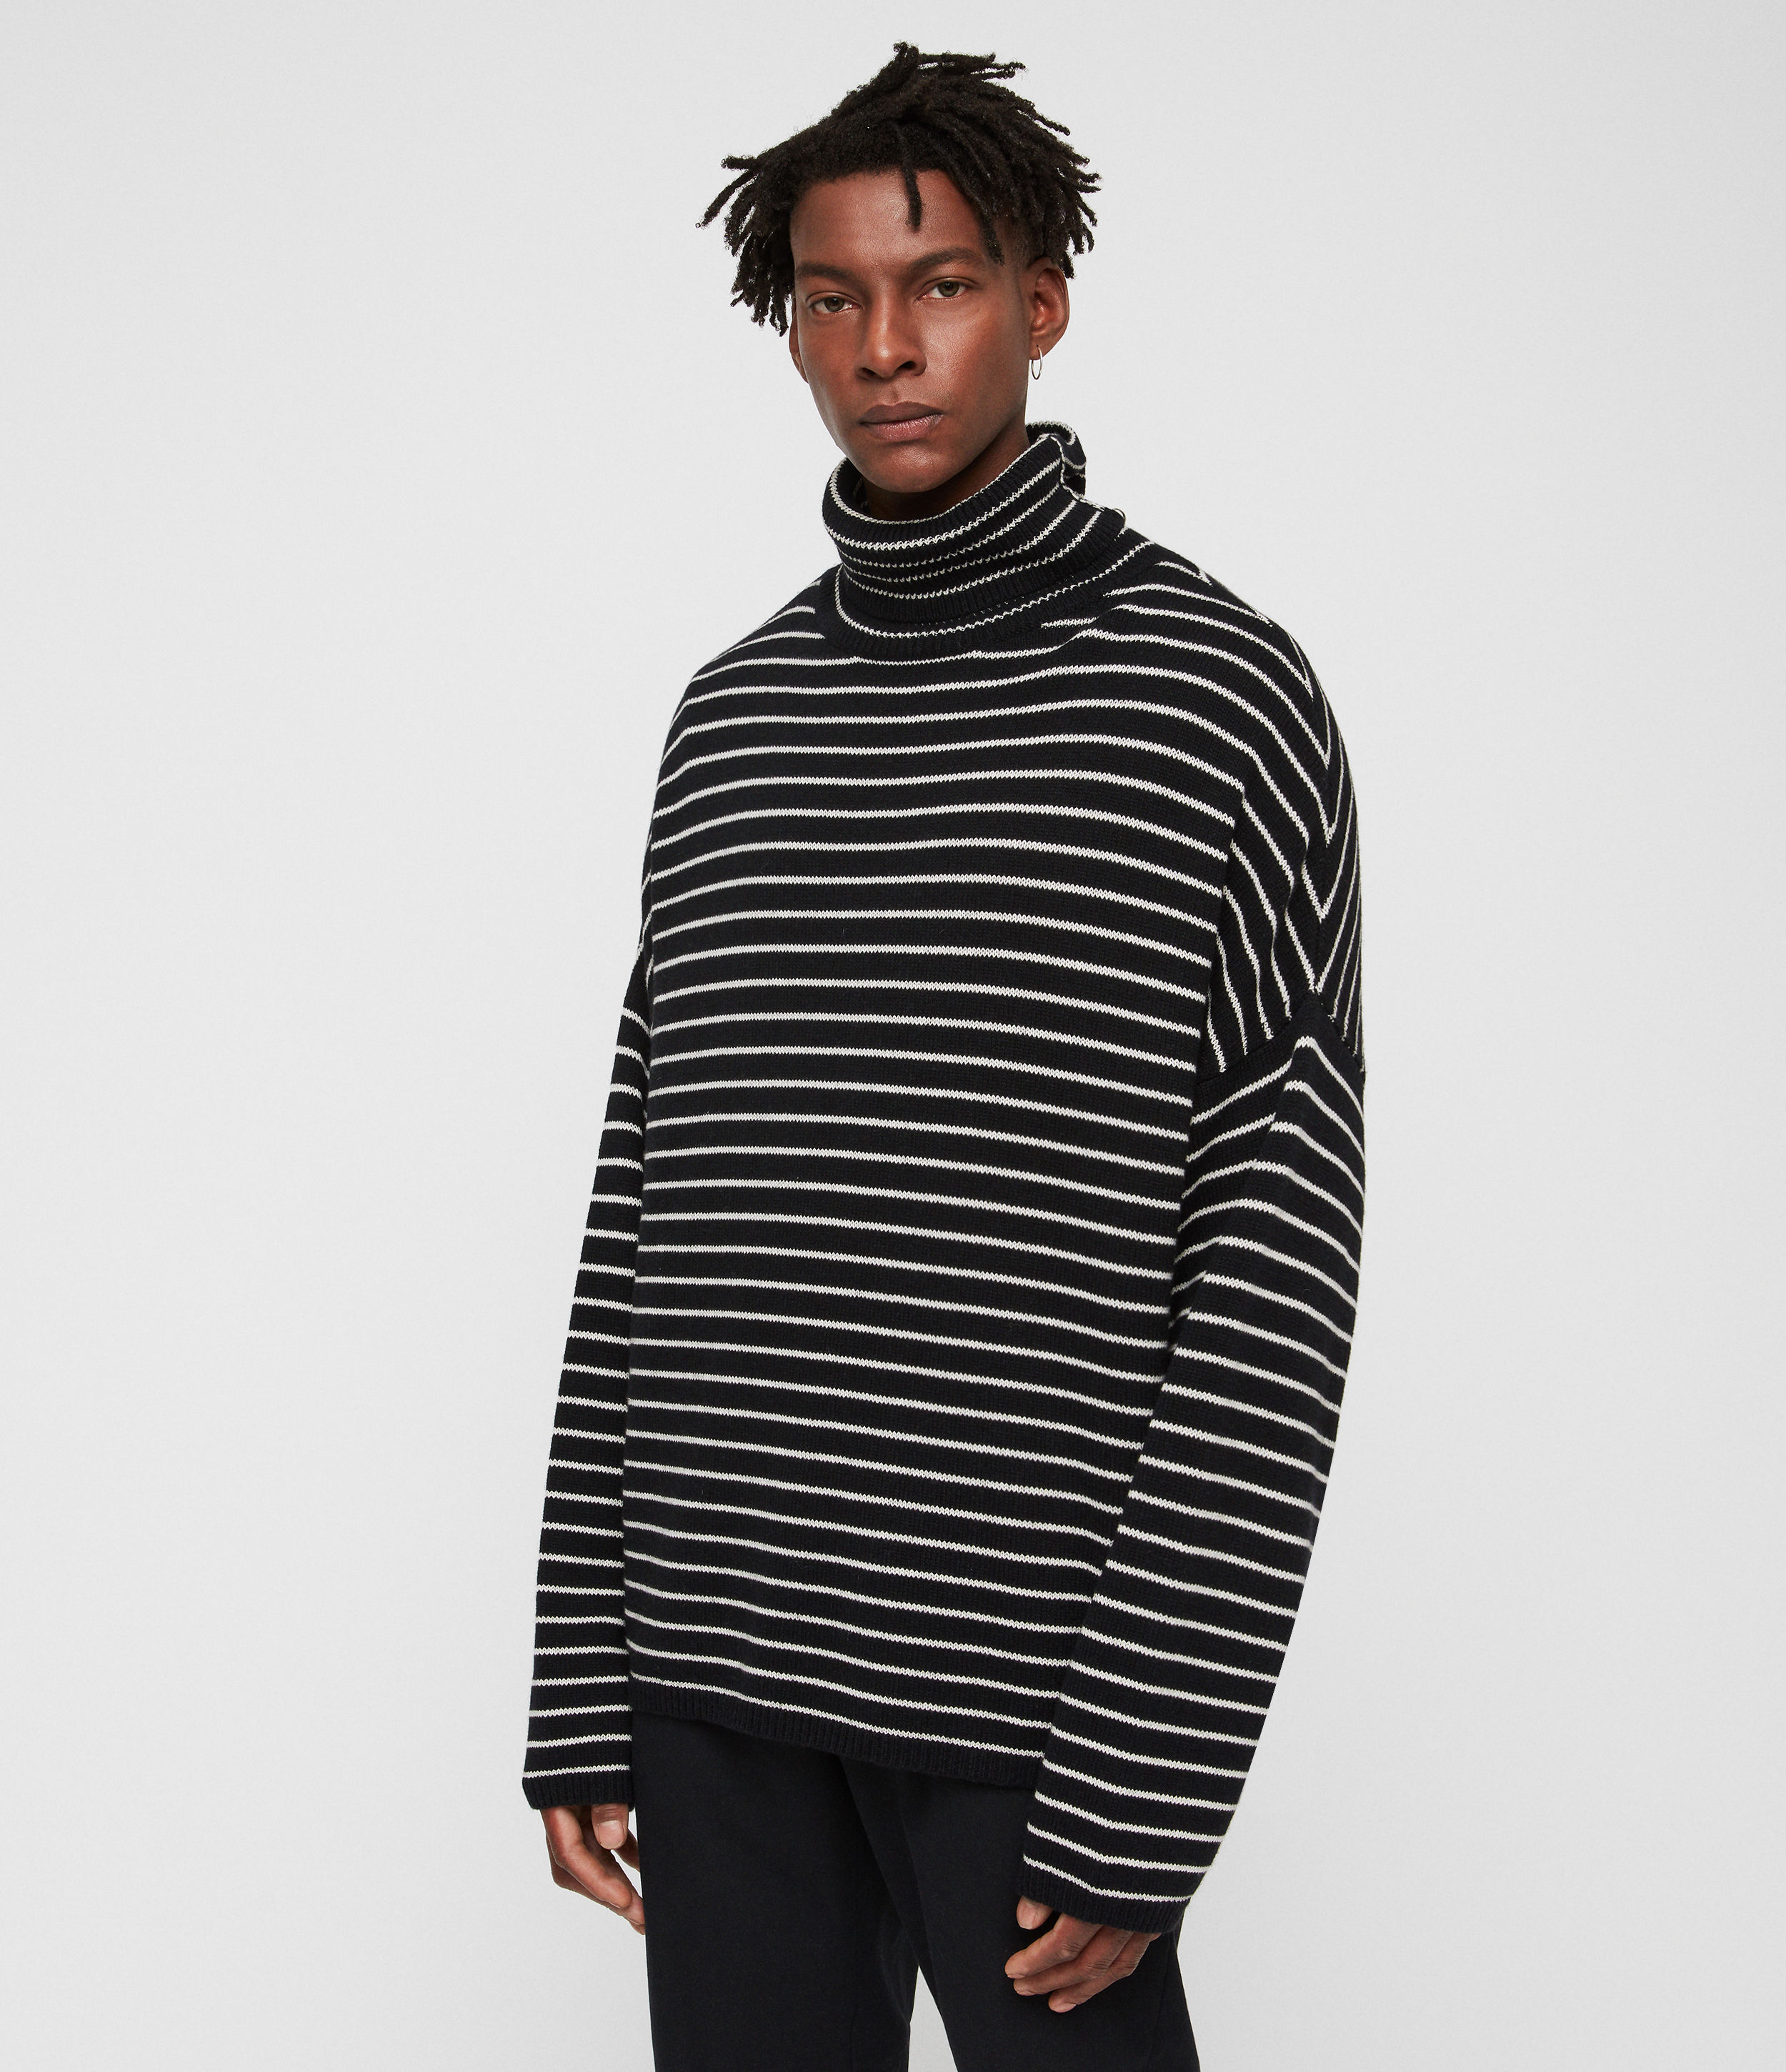 AllSaints Men's Wool Stripe Relaxed Fit Marty Funnel Neck Jumper, Black and White, Size: XS